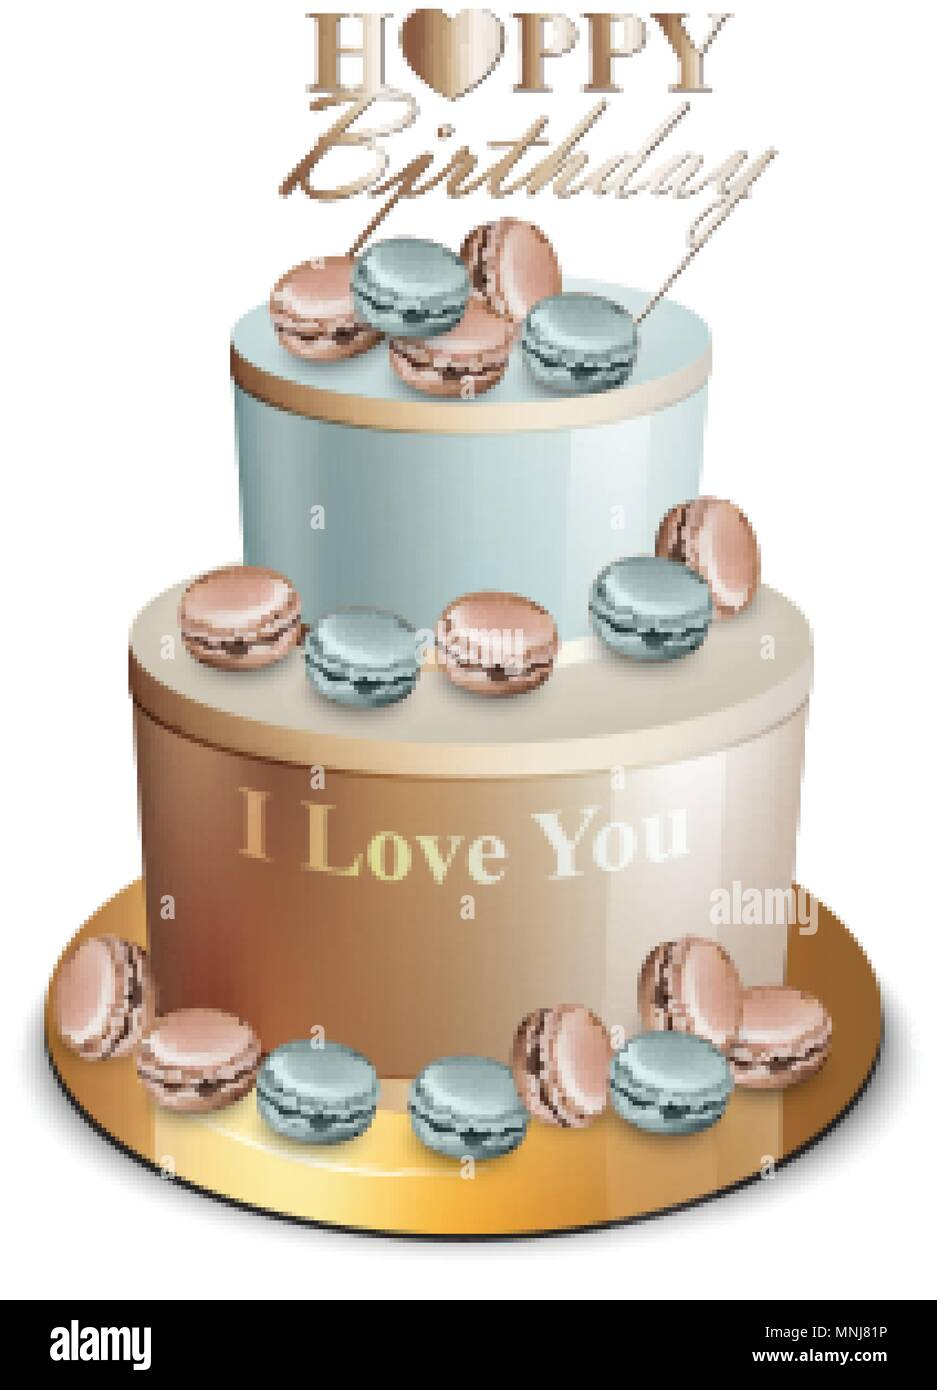 Happy Birthday Cake Vector Realistic Blue And Golden Anniversary